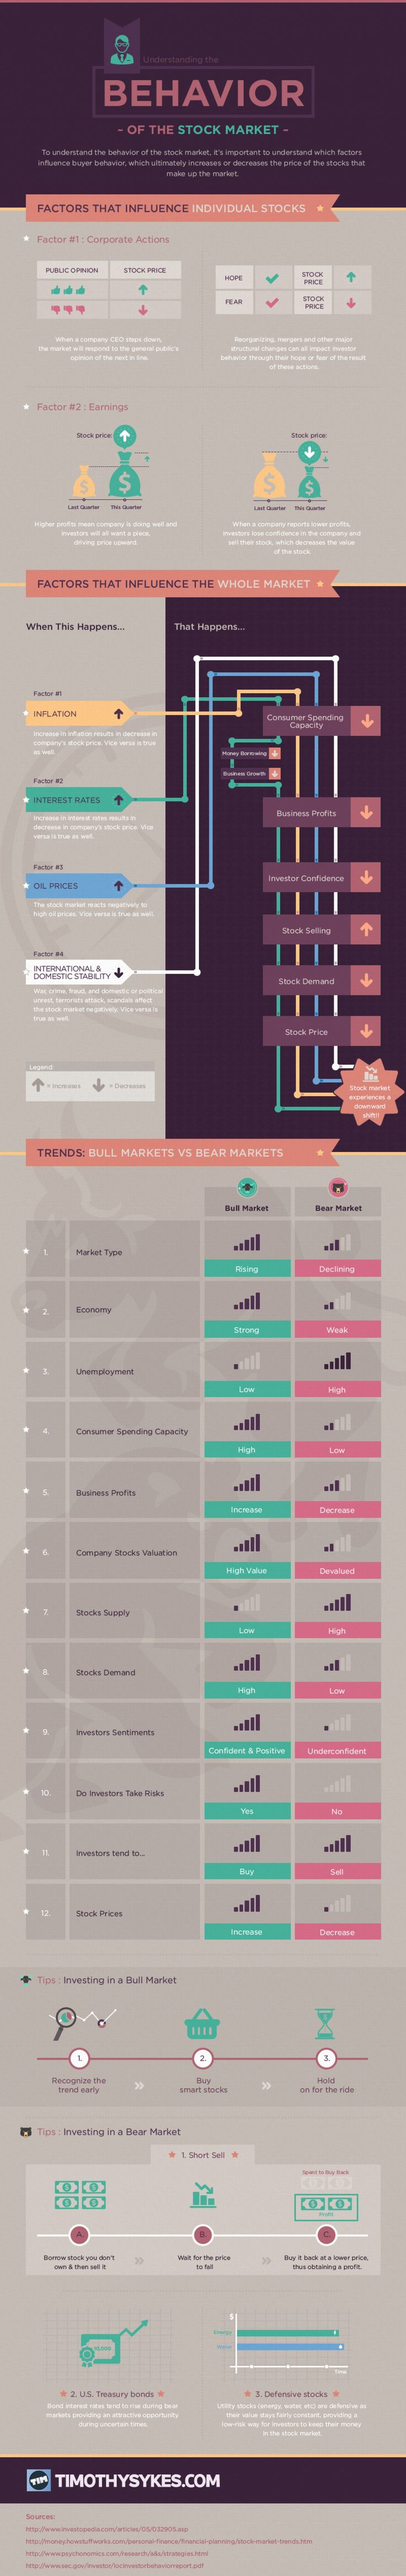 Understanding the Behavior of the Stock Market Infographic